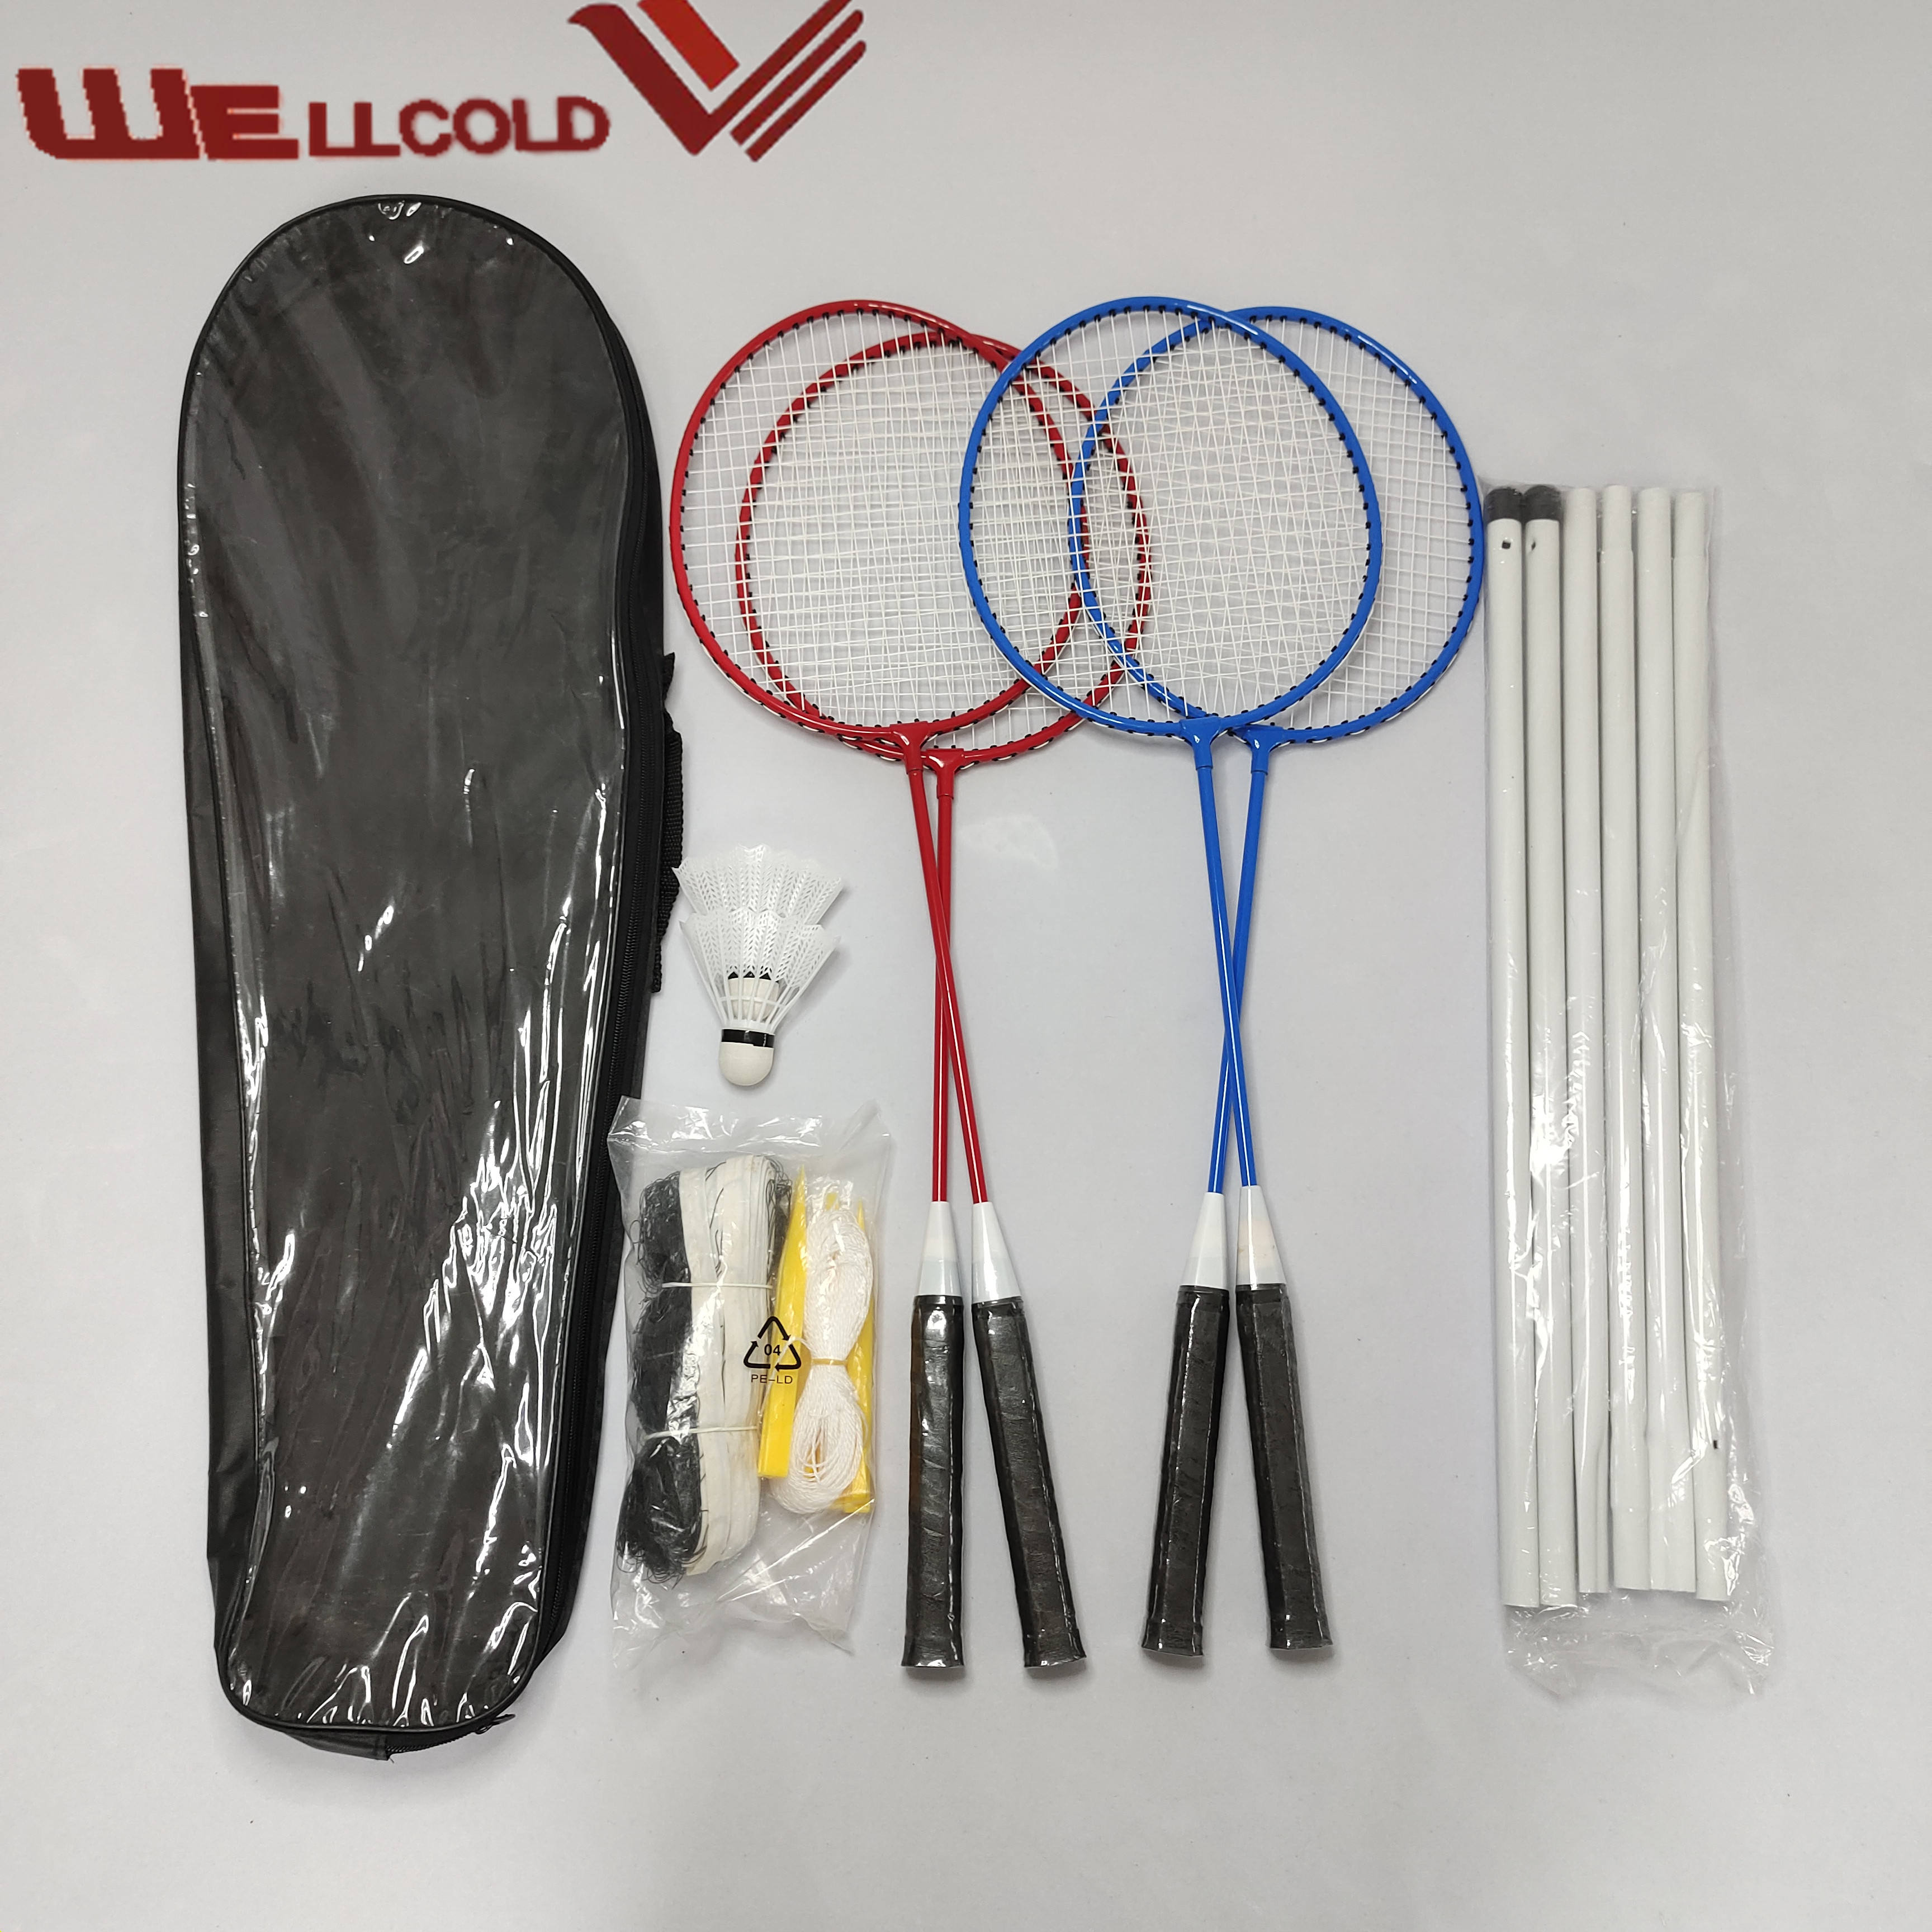 Cheapest best quality steel badminton set,top brand racket badminton set for players